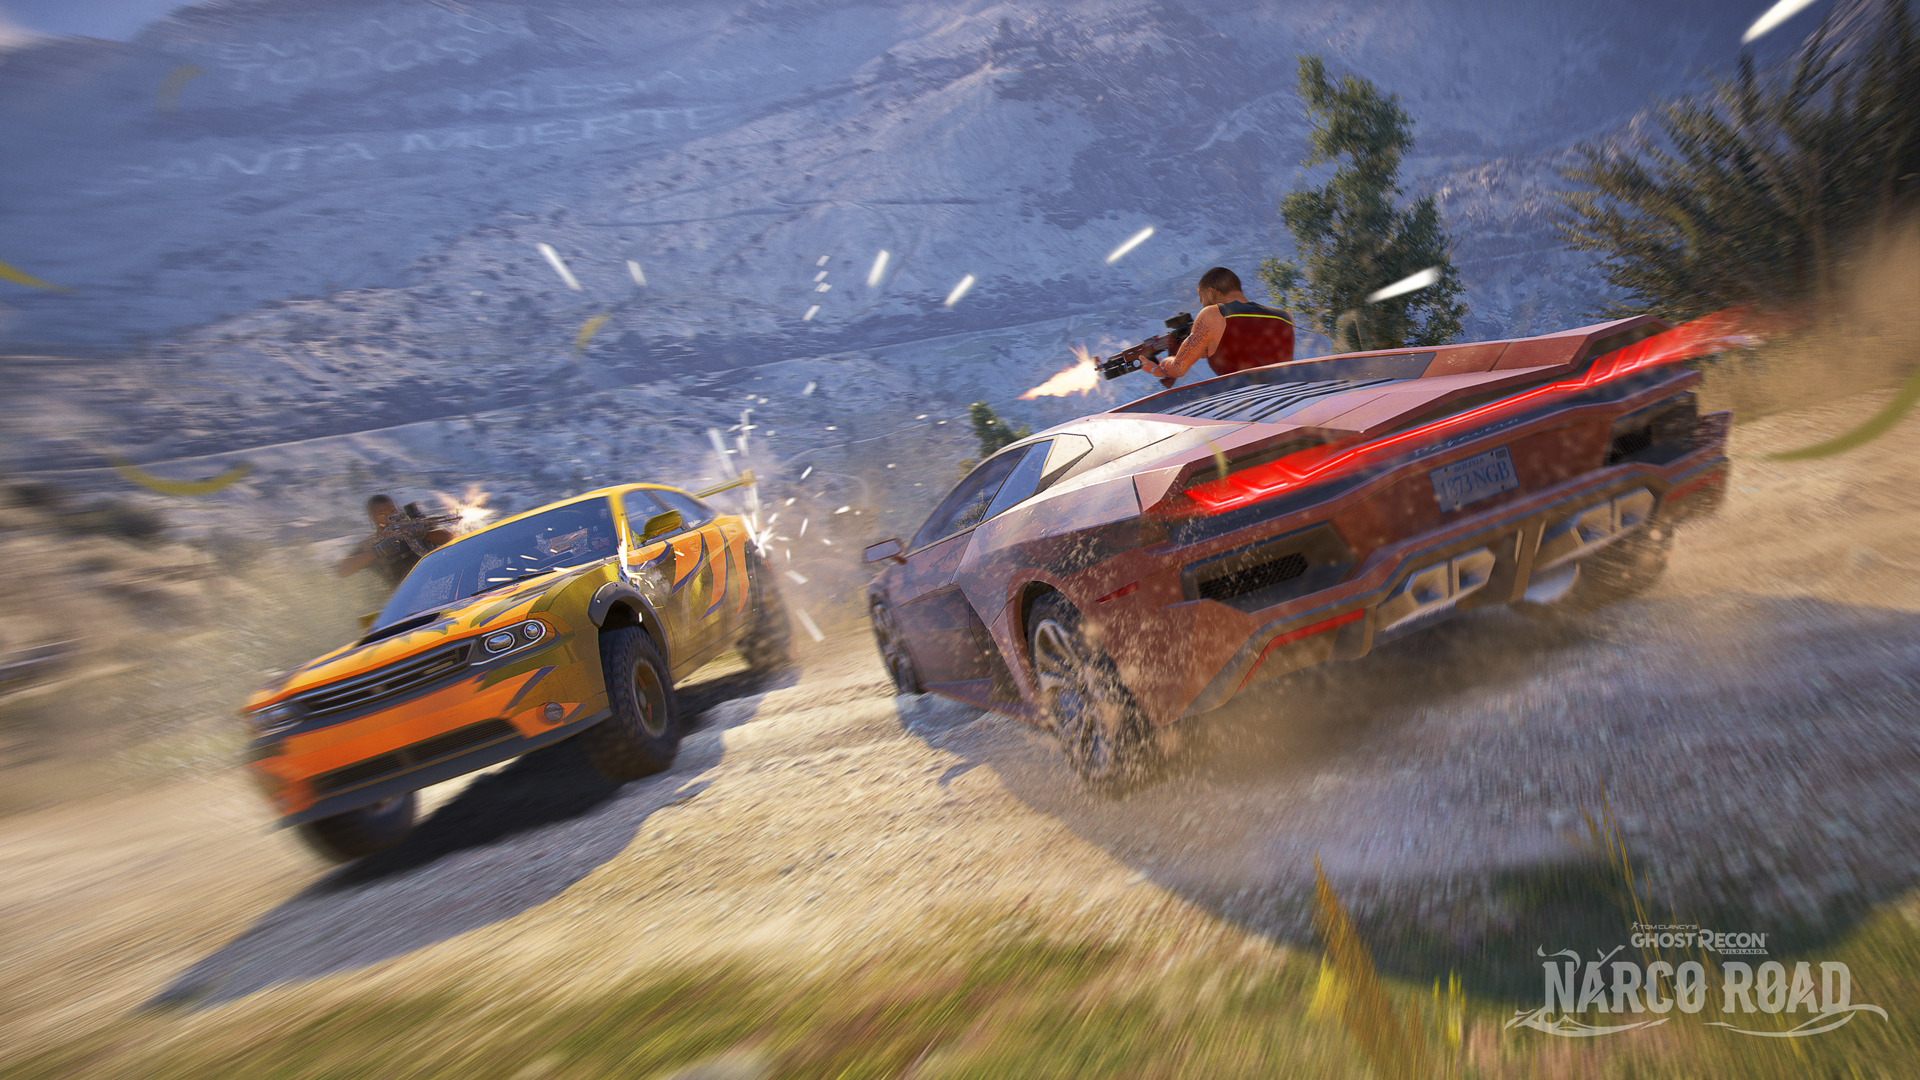 The new Narco Road DLC adds plenty more hours of fun to the brilliant Wildlands